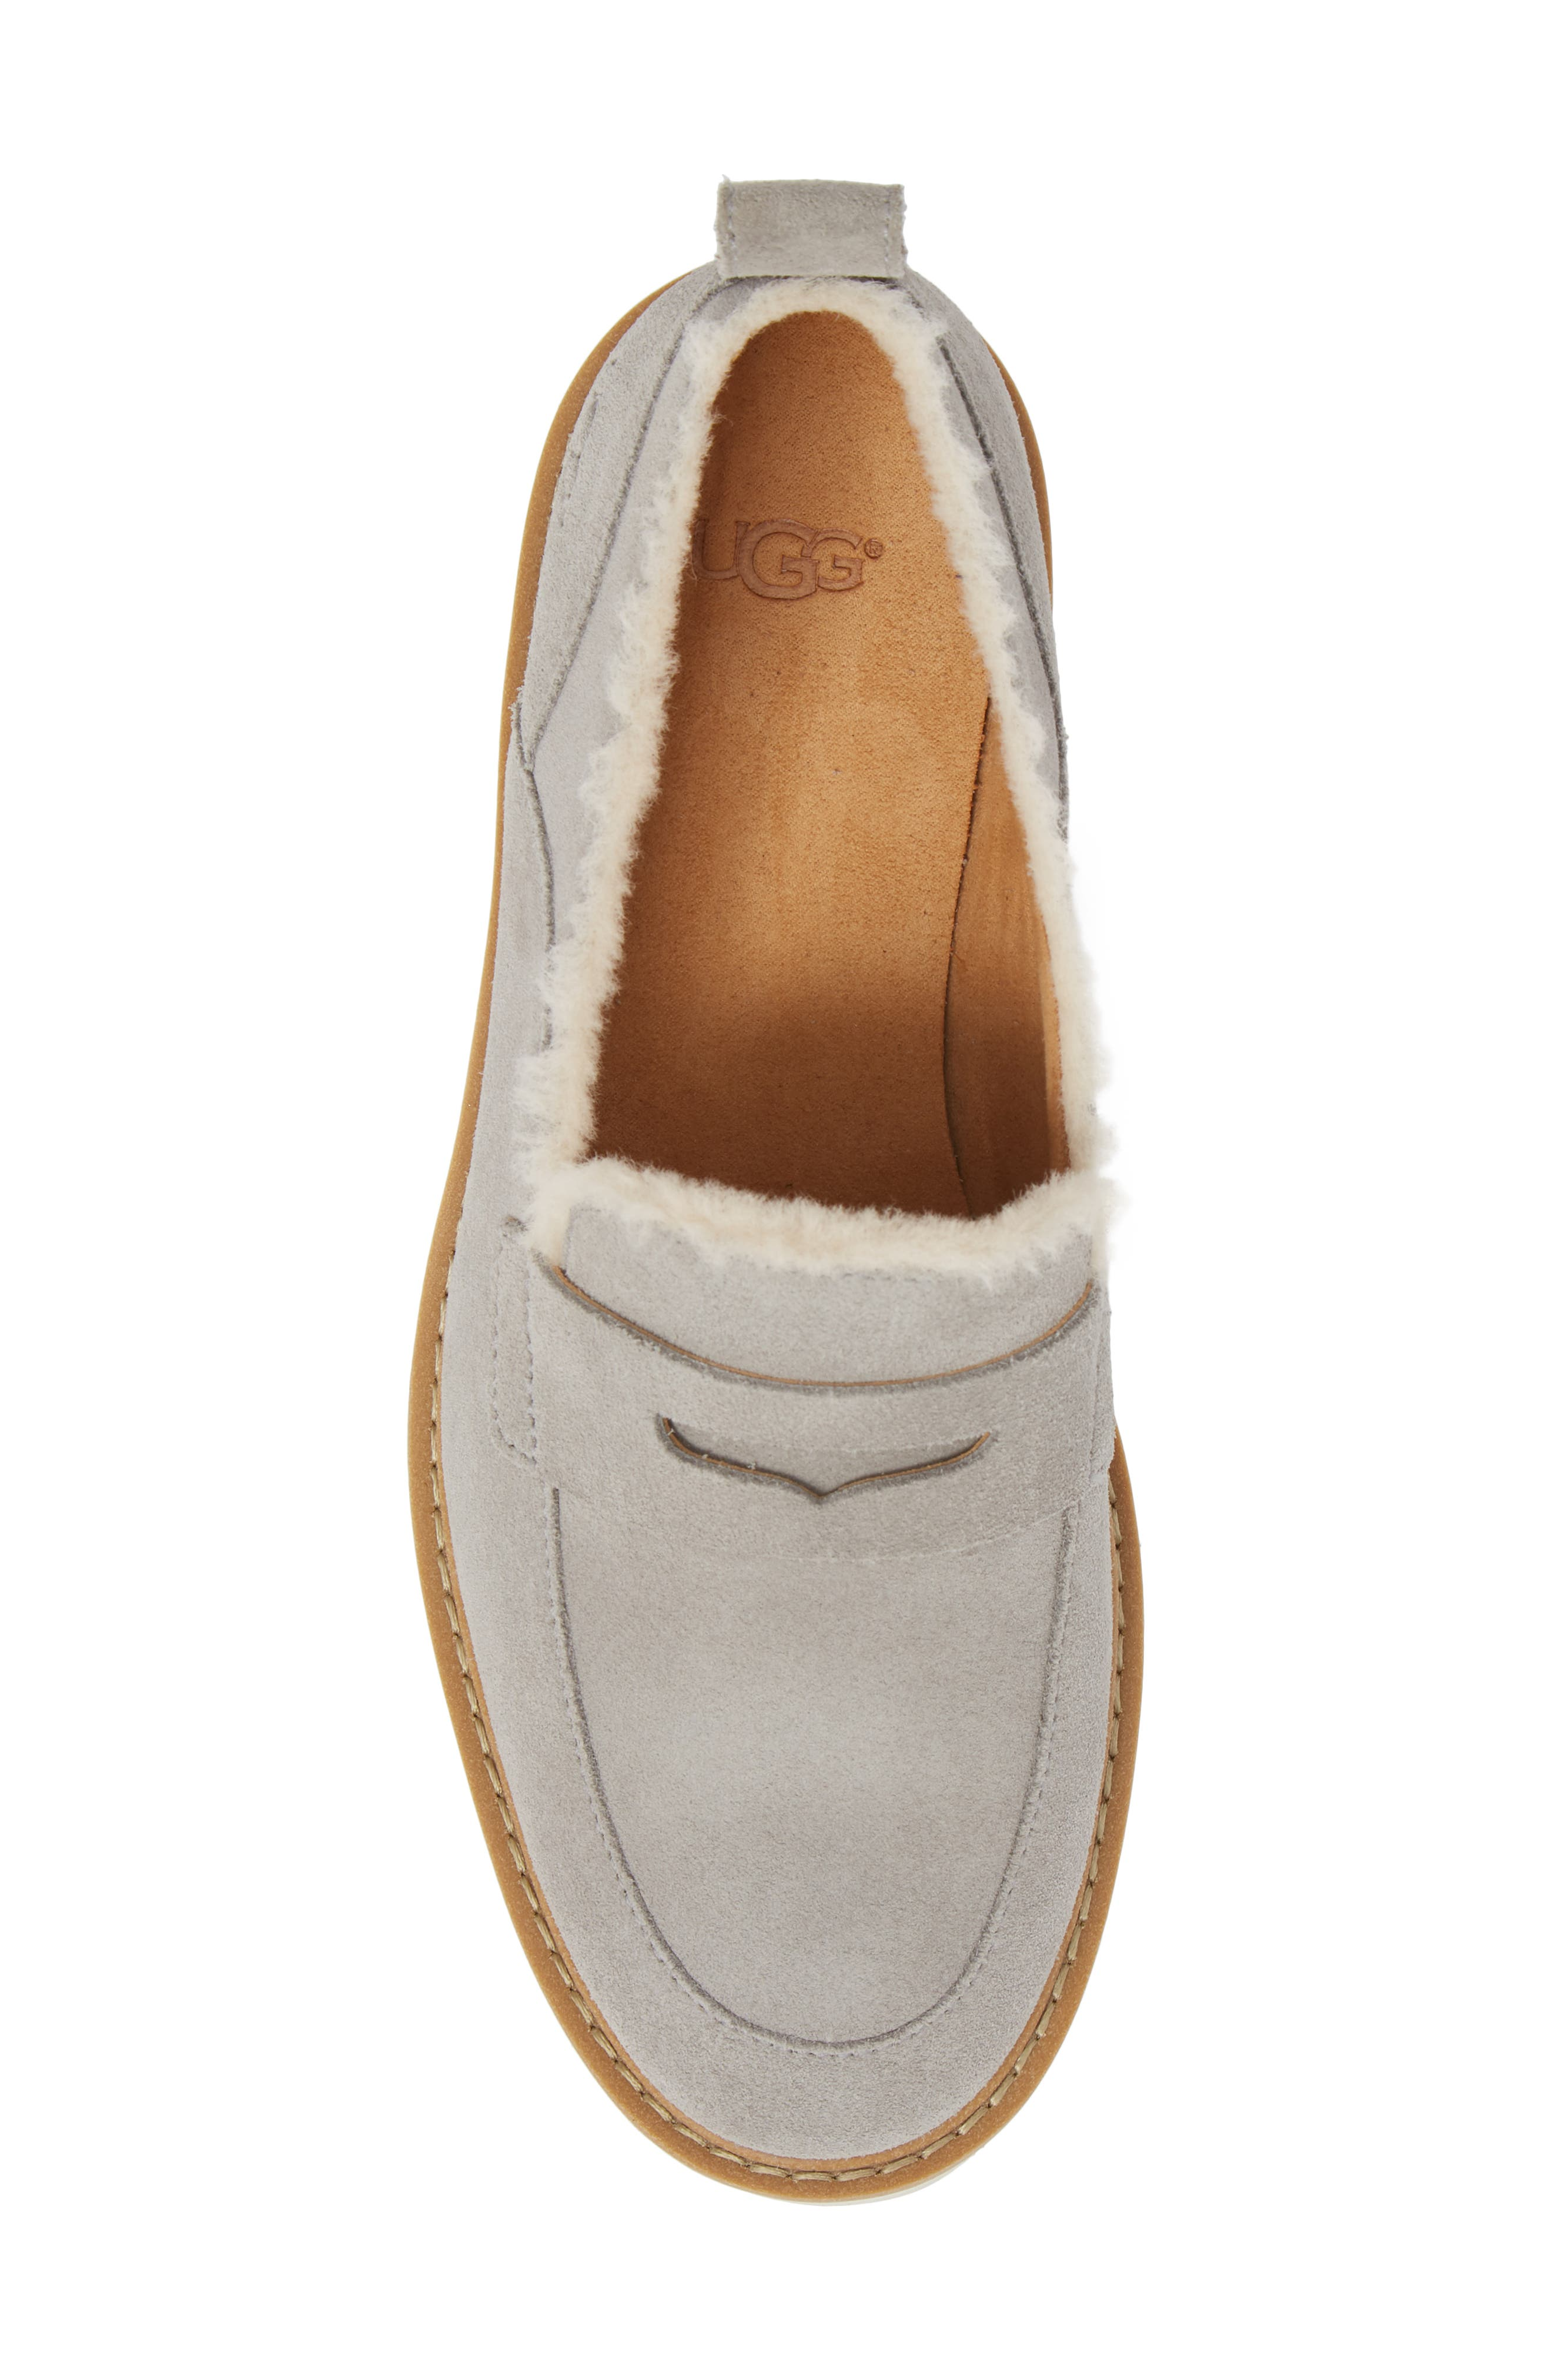 Atwater Spill Seam Wedge Loafer,                             Alternate thumbnail 5, color,                             SEAL LEATHER